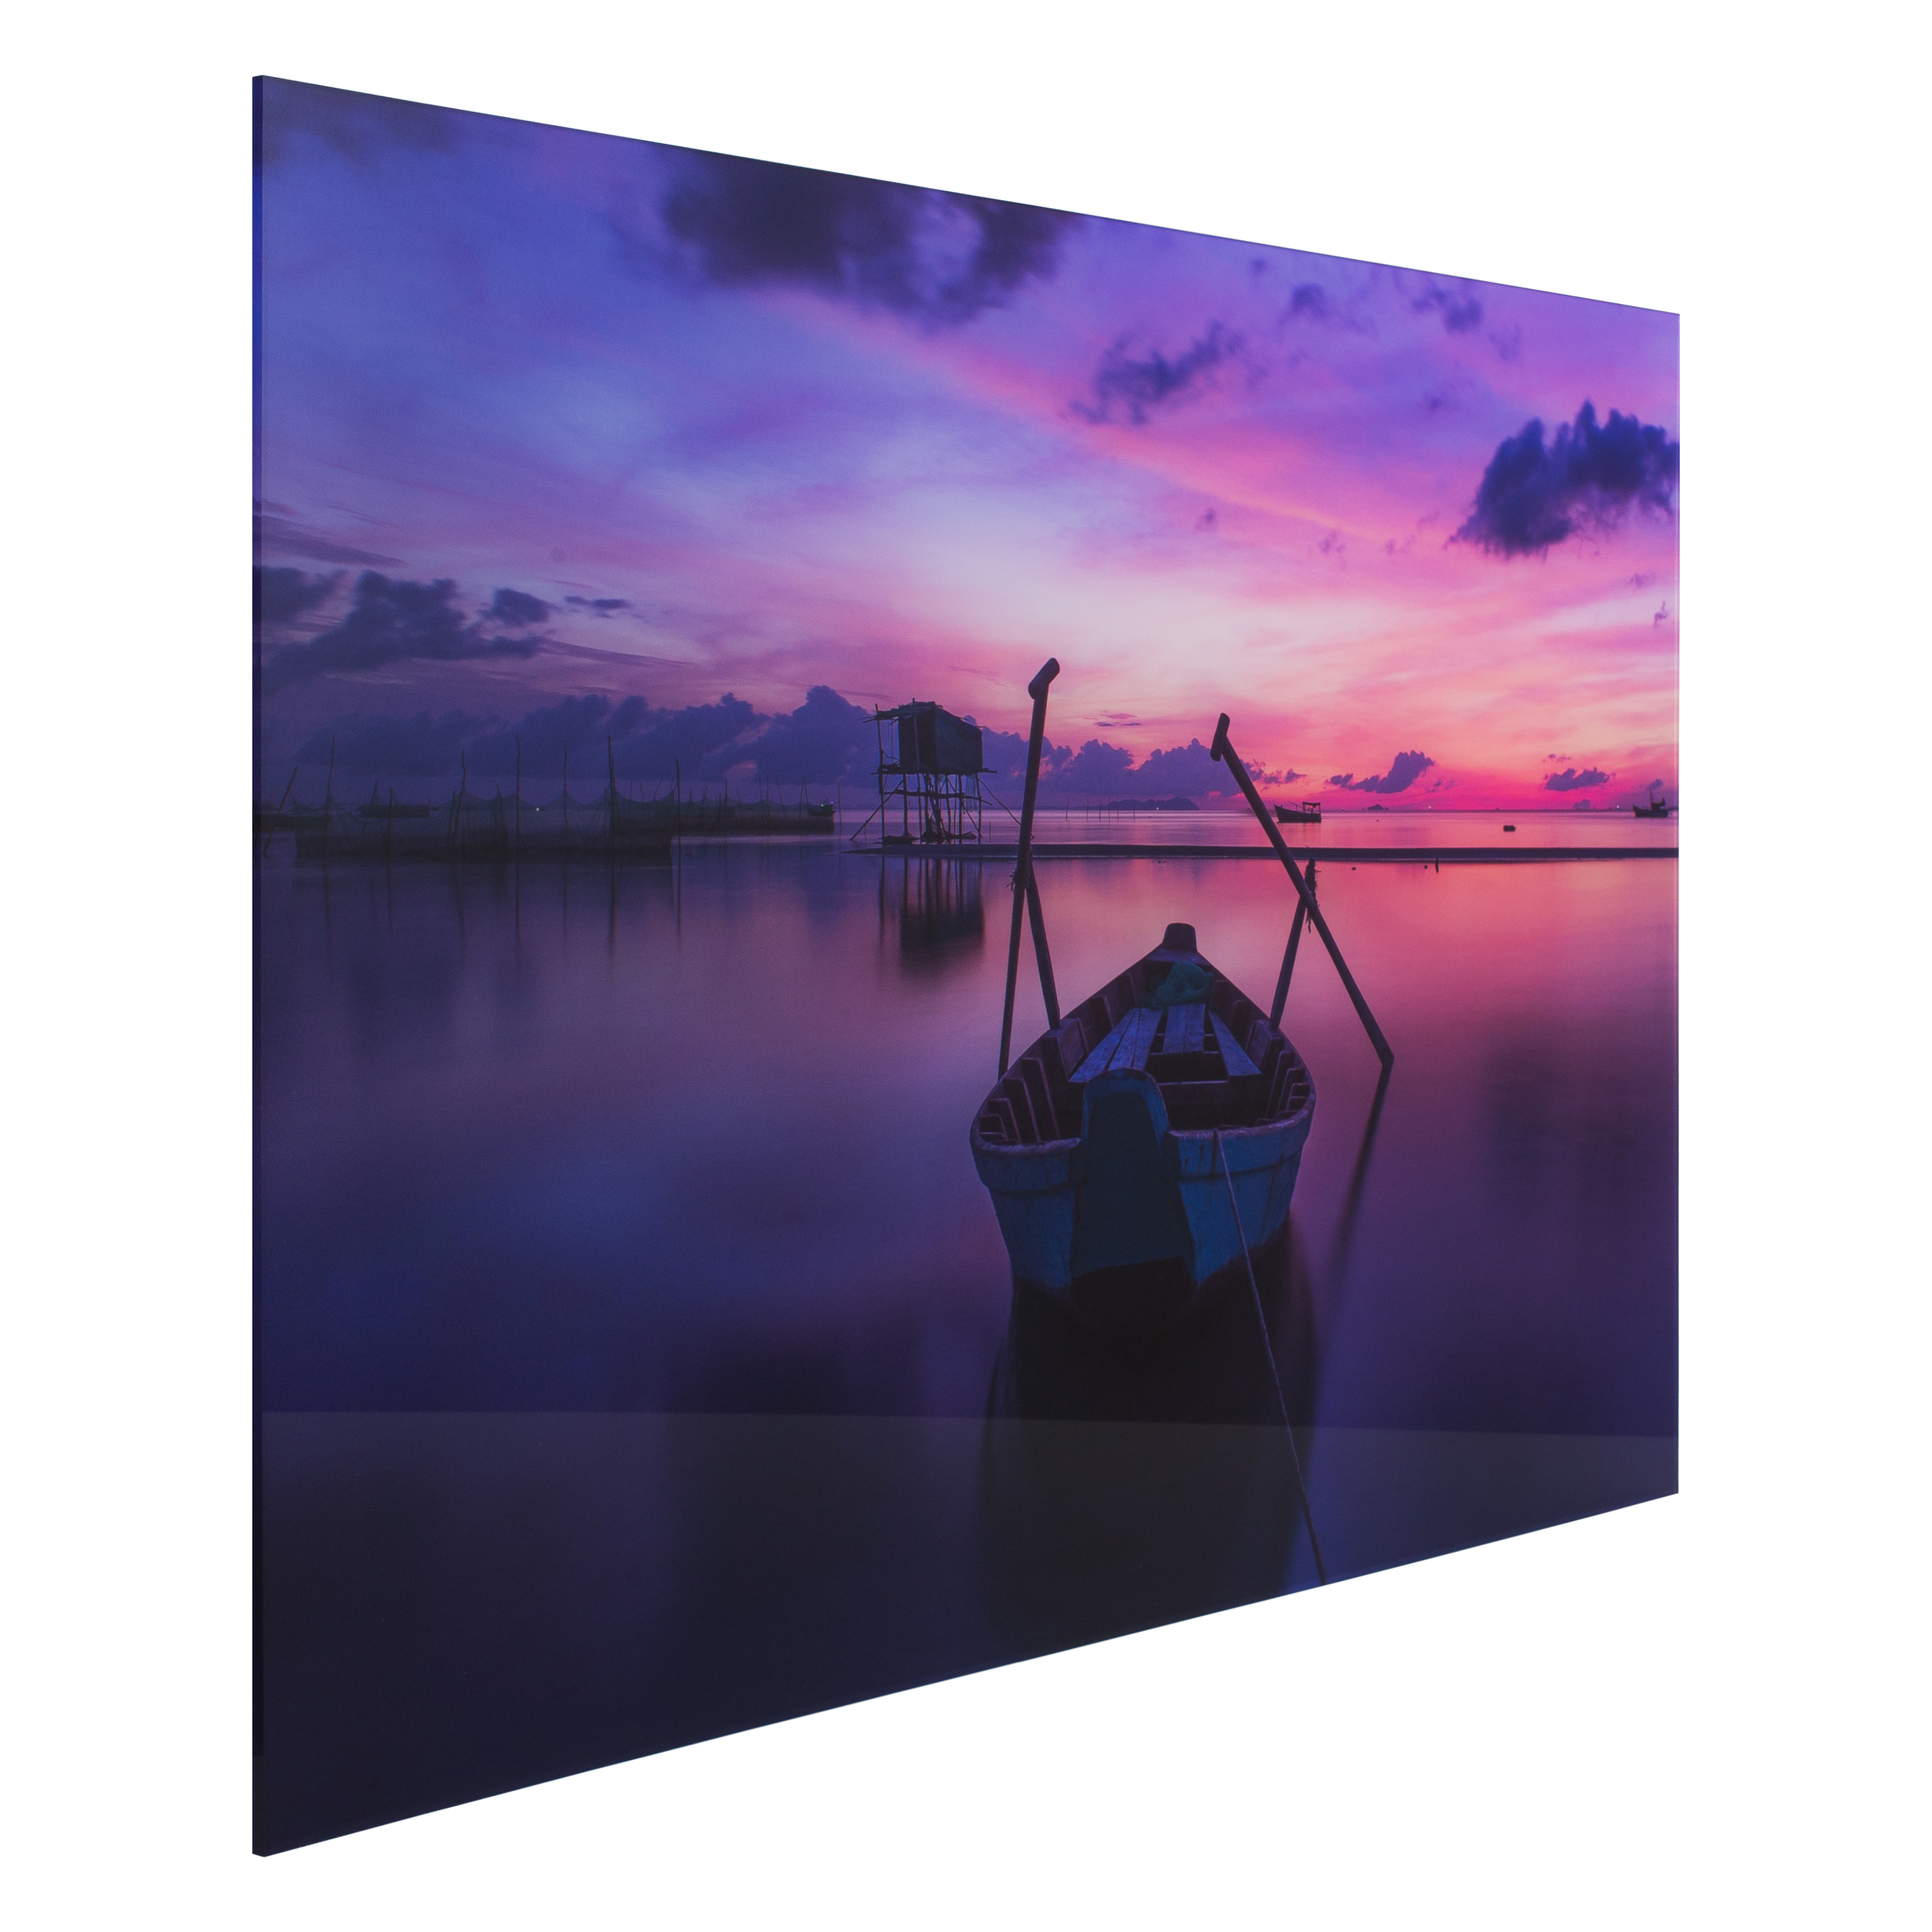 Custom acrylic print of row boat on water at sunset